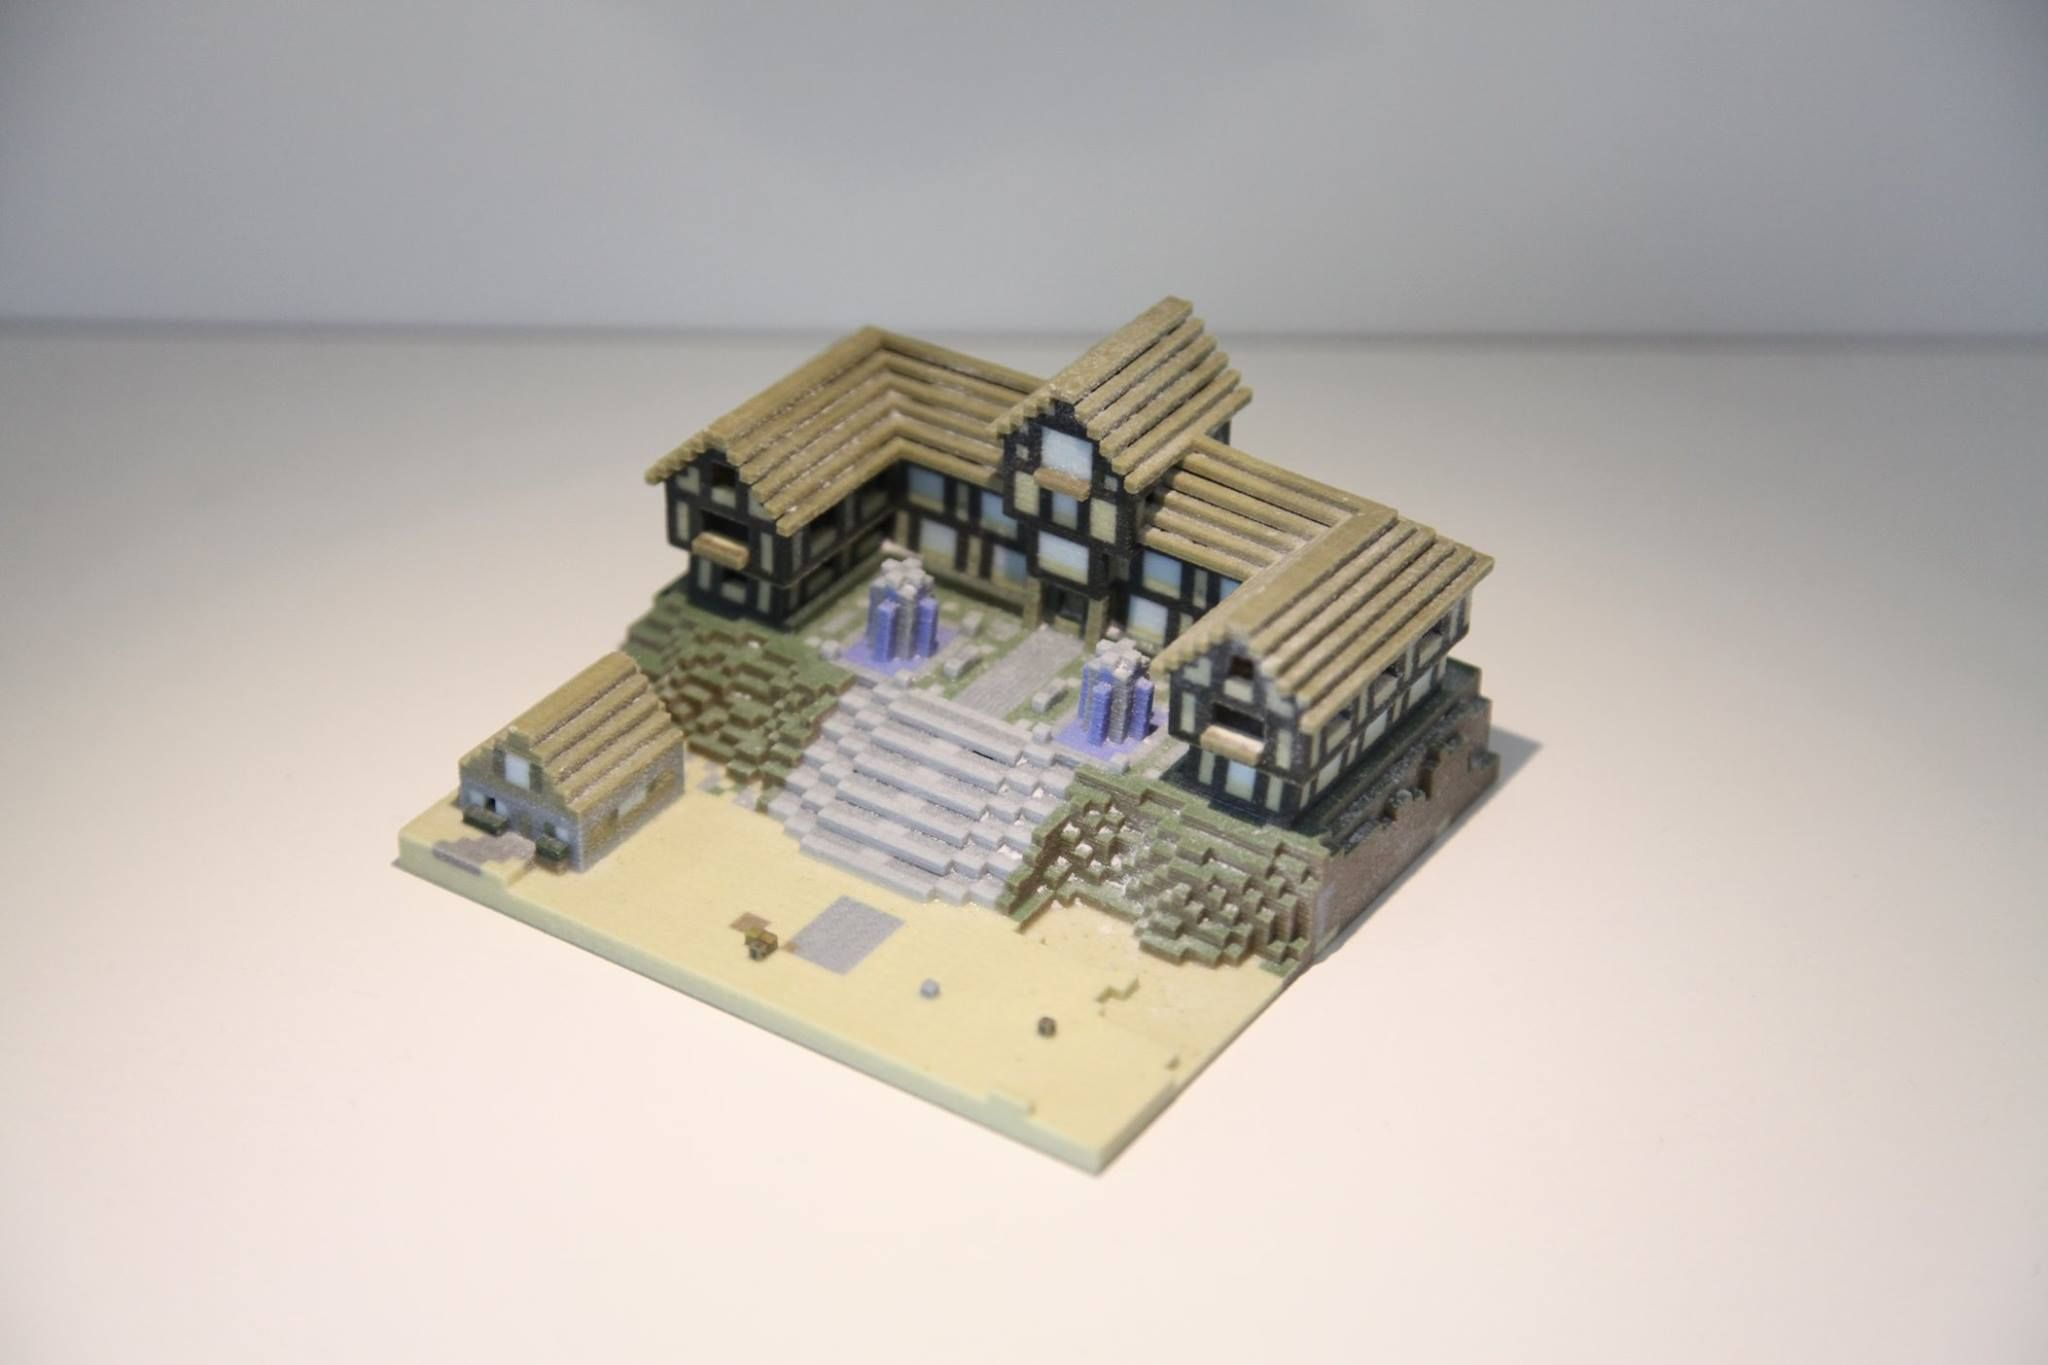 Check out this #minecraft #house we #3d printed! You can see the workbench and stairs inside the house!  Contact us (service@3dhobby.co.nz) today to get your minecraft world exported and printed!